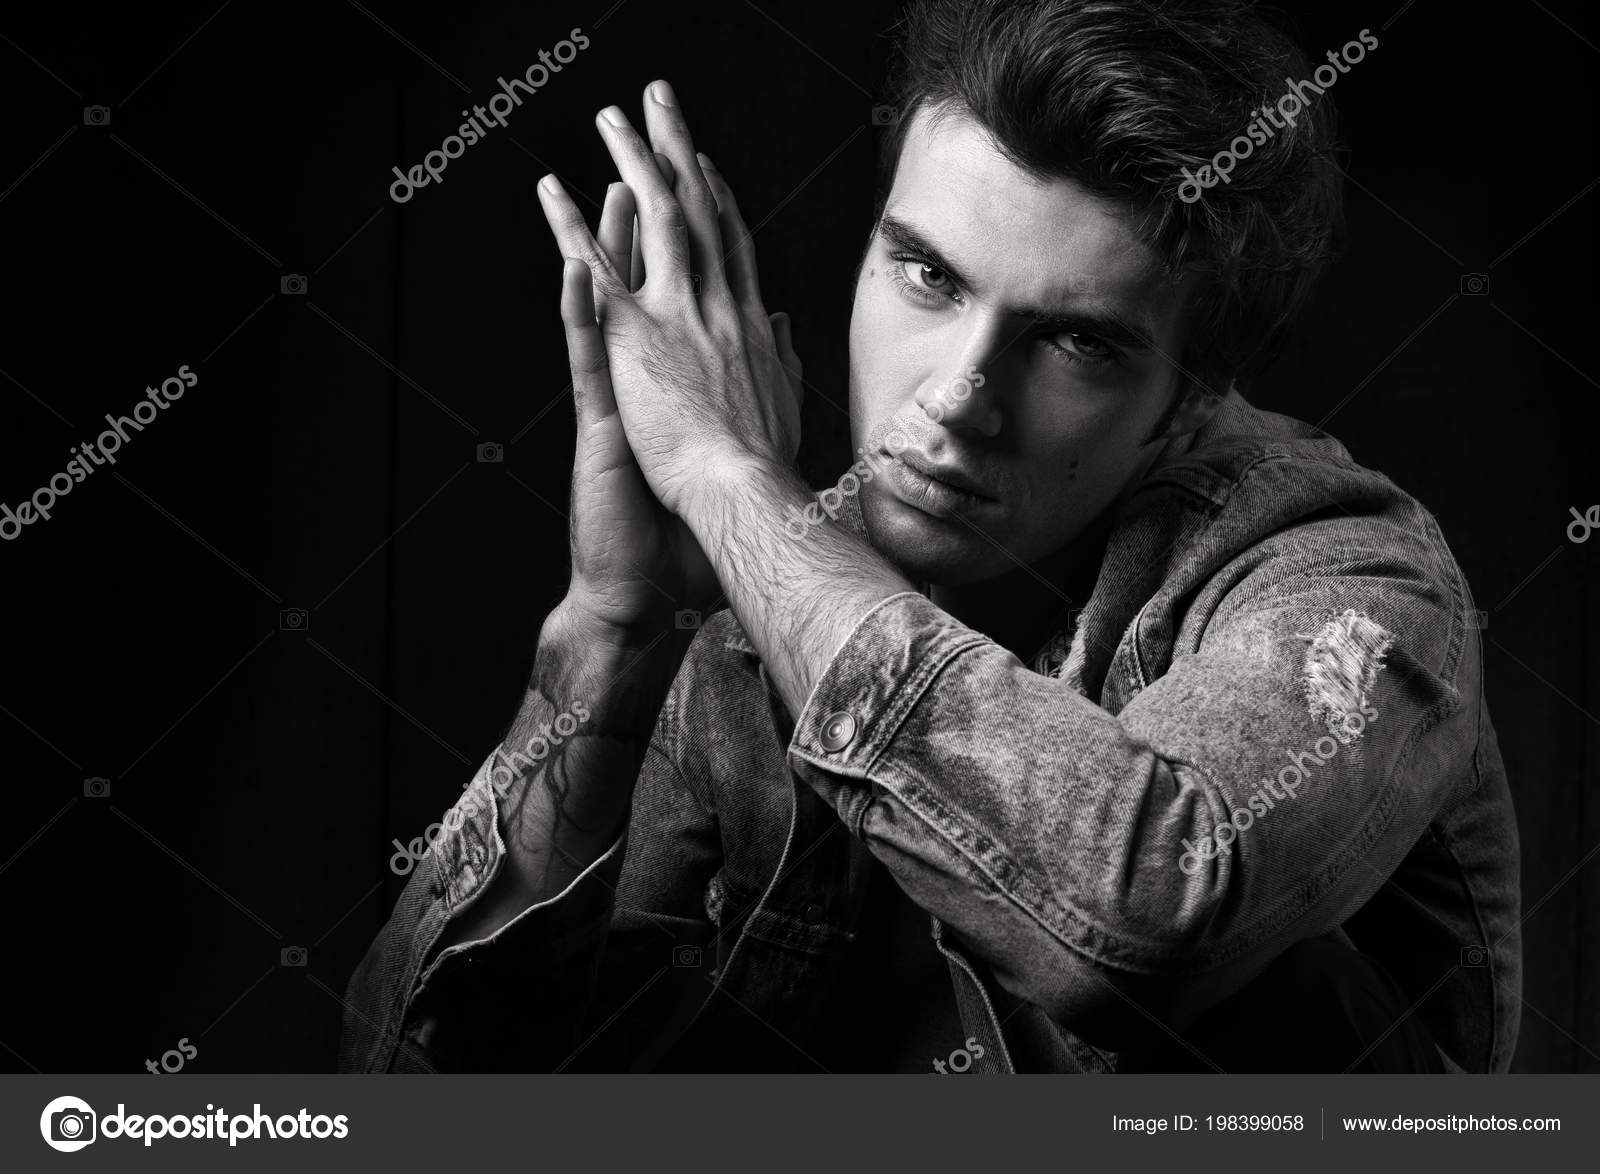 Closeup of black and white masculine portrait on a black background young handsome man posing and looking at camera fashion photograph professional model